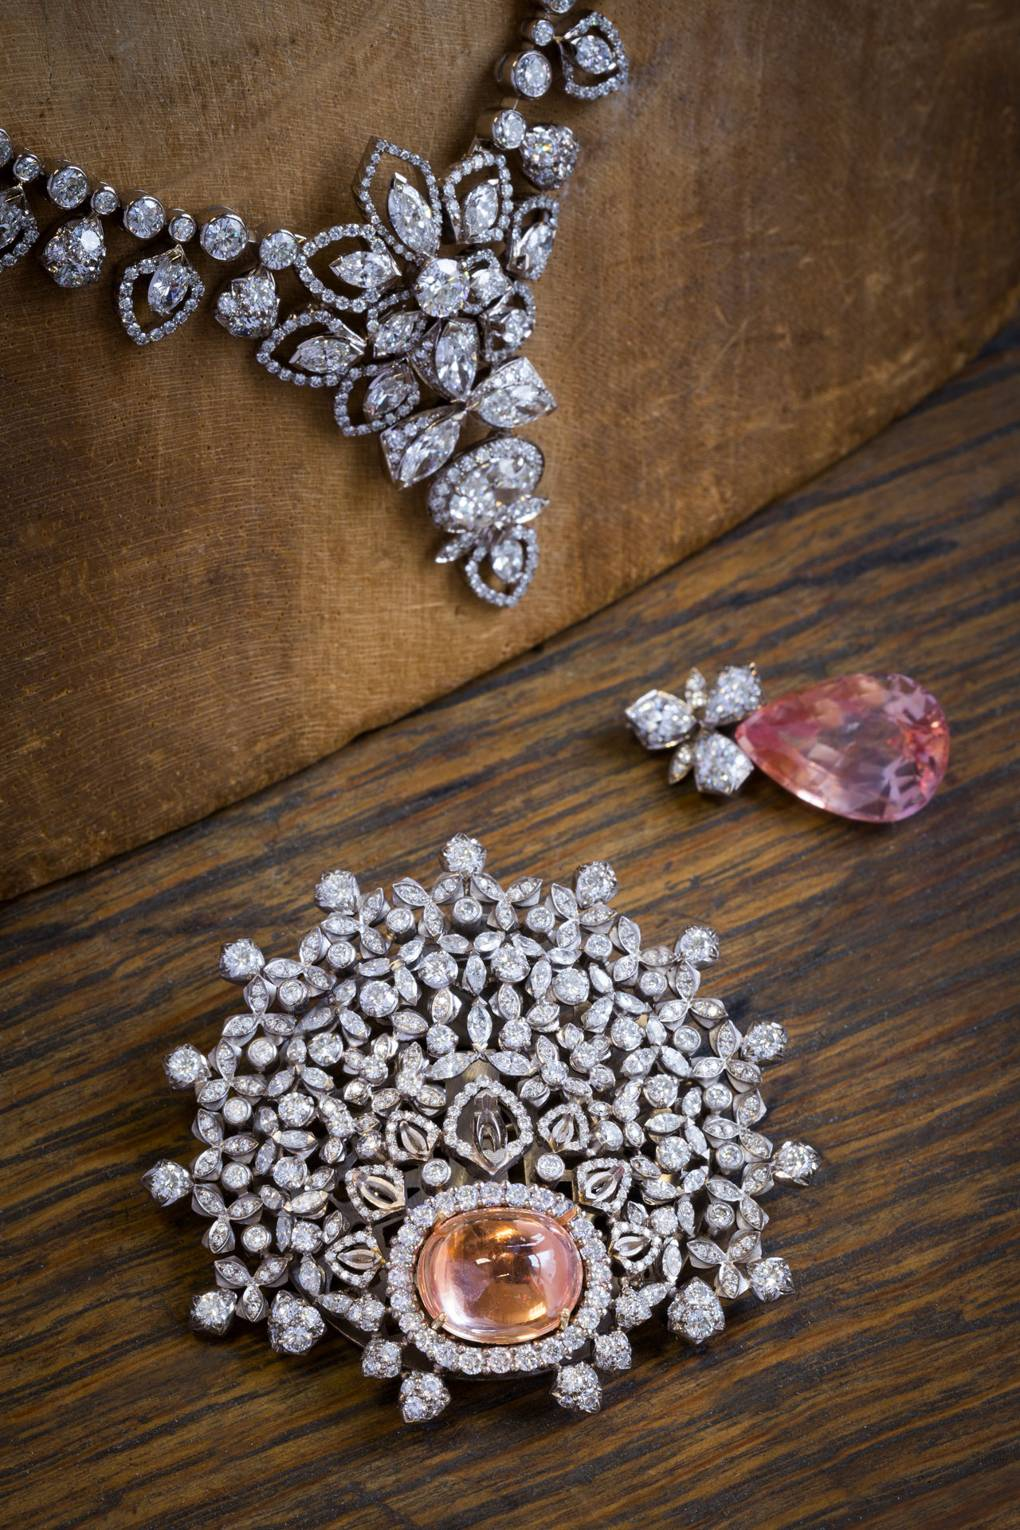 0b48eee03 #SuzyCouture: Jewellery With a Story to Tell   British Vogue